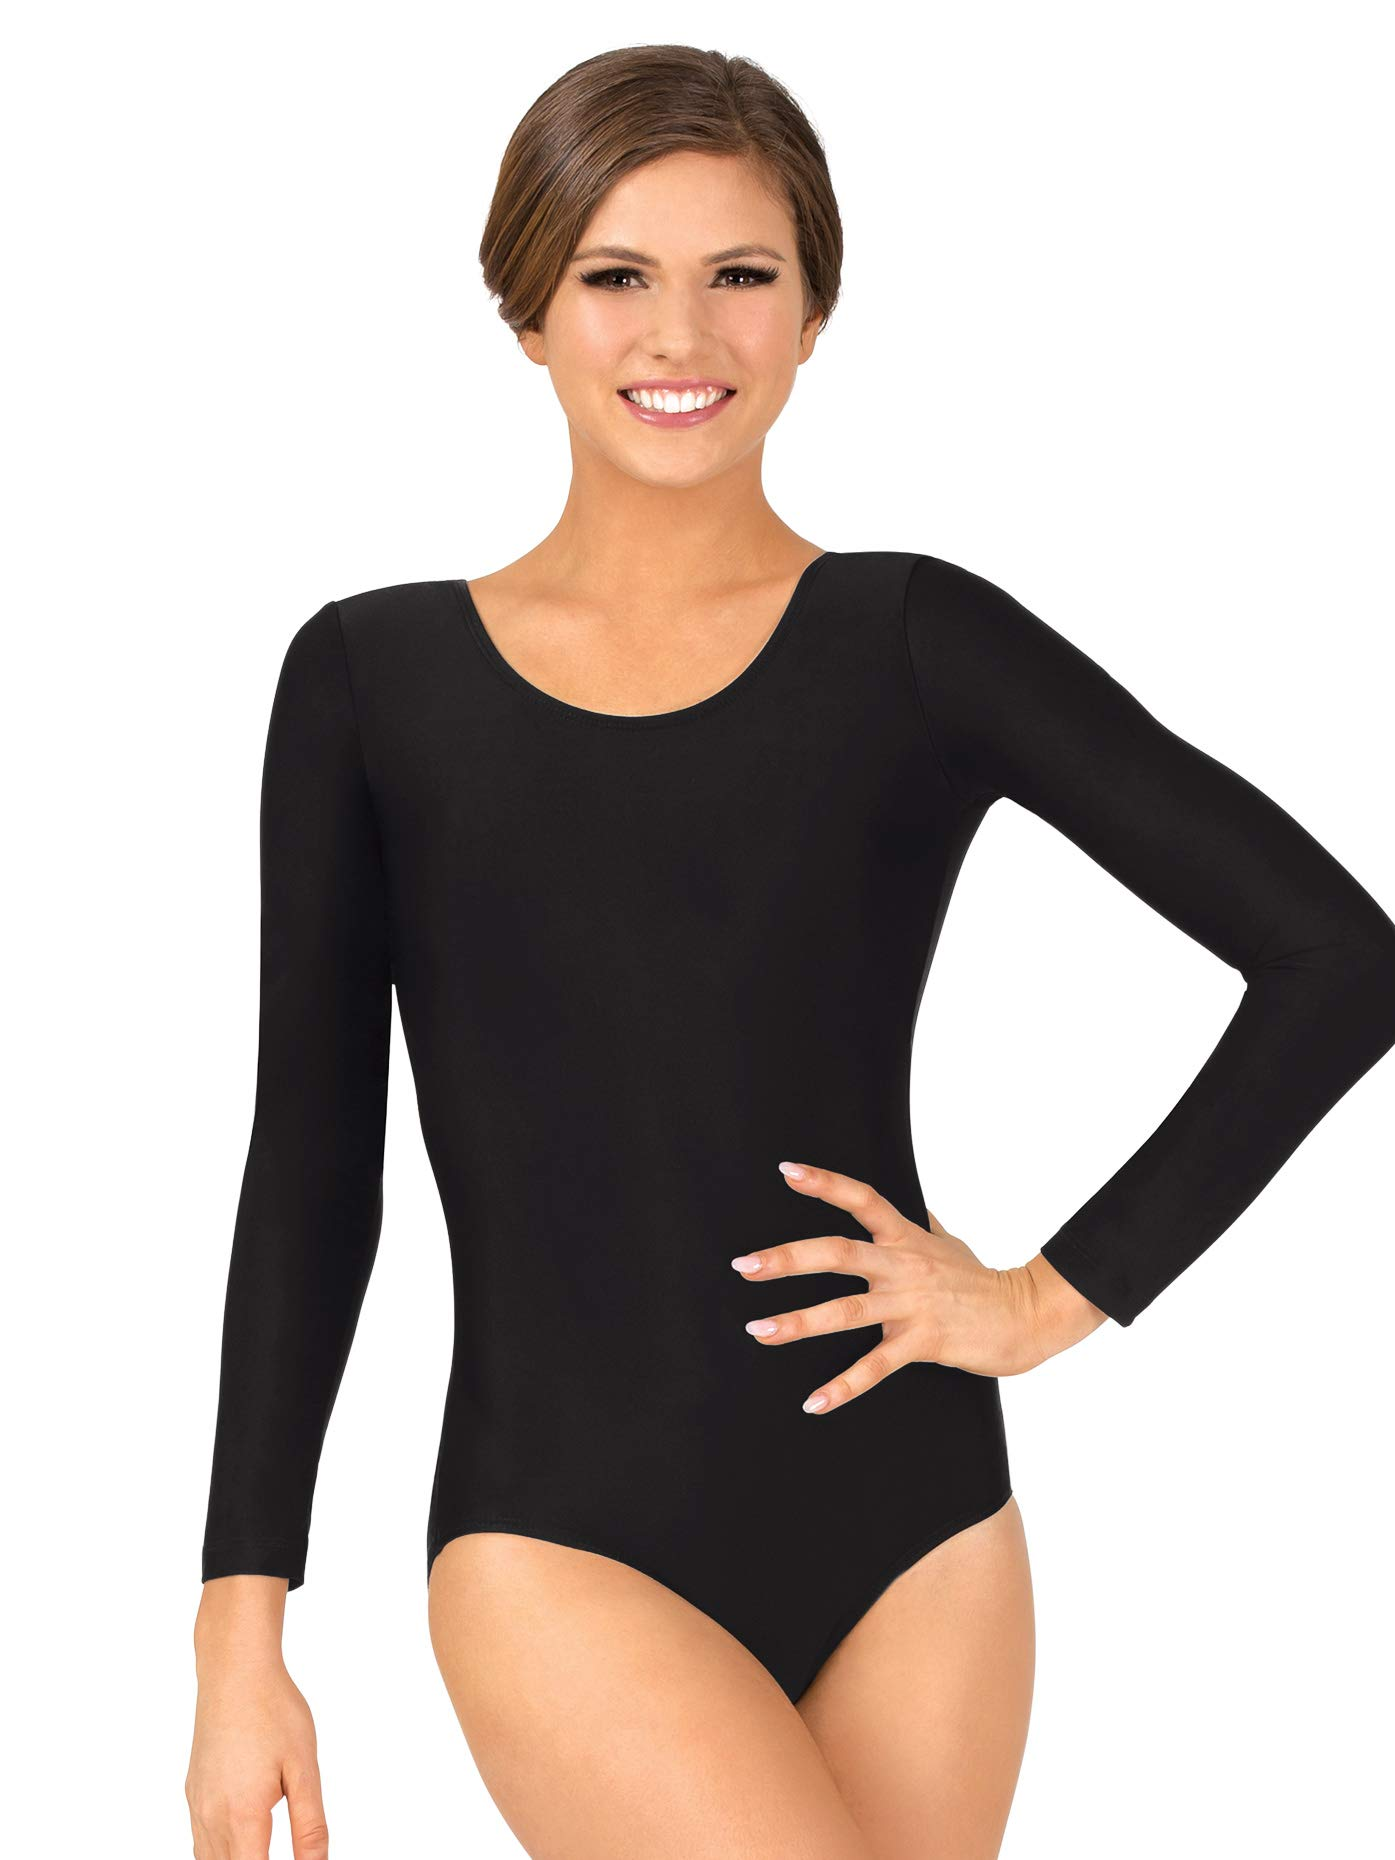 Adult Long Sleeve Dance Leotard D5103REDXL Red XL by Theatricals